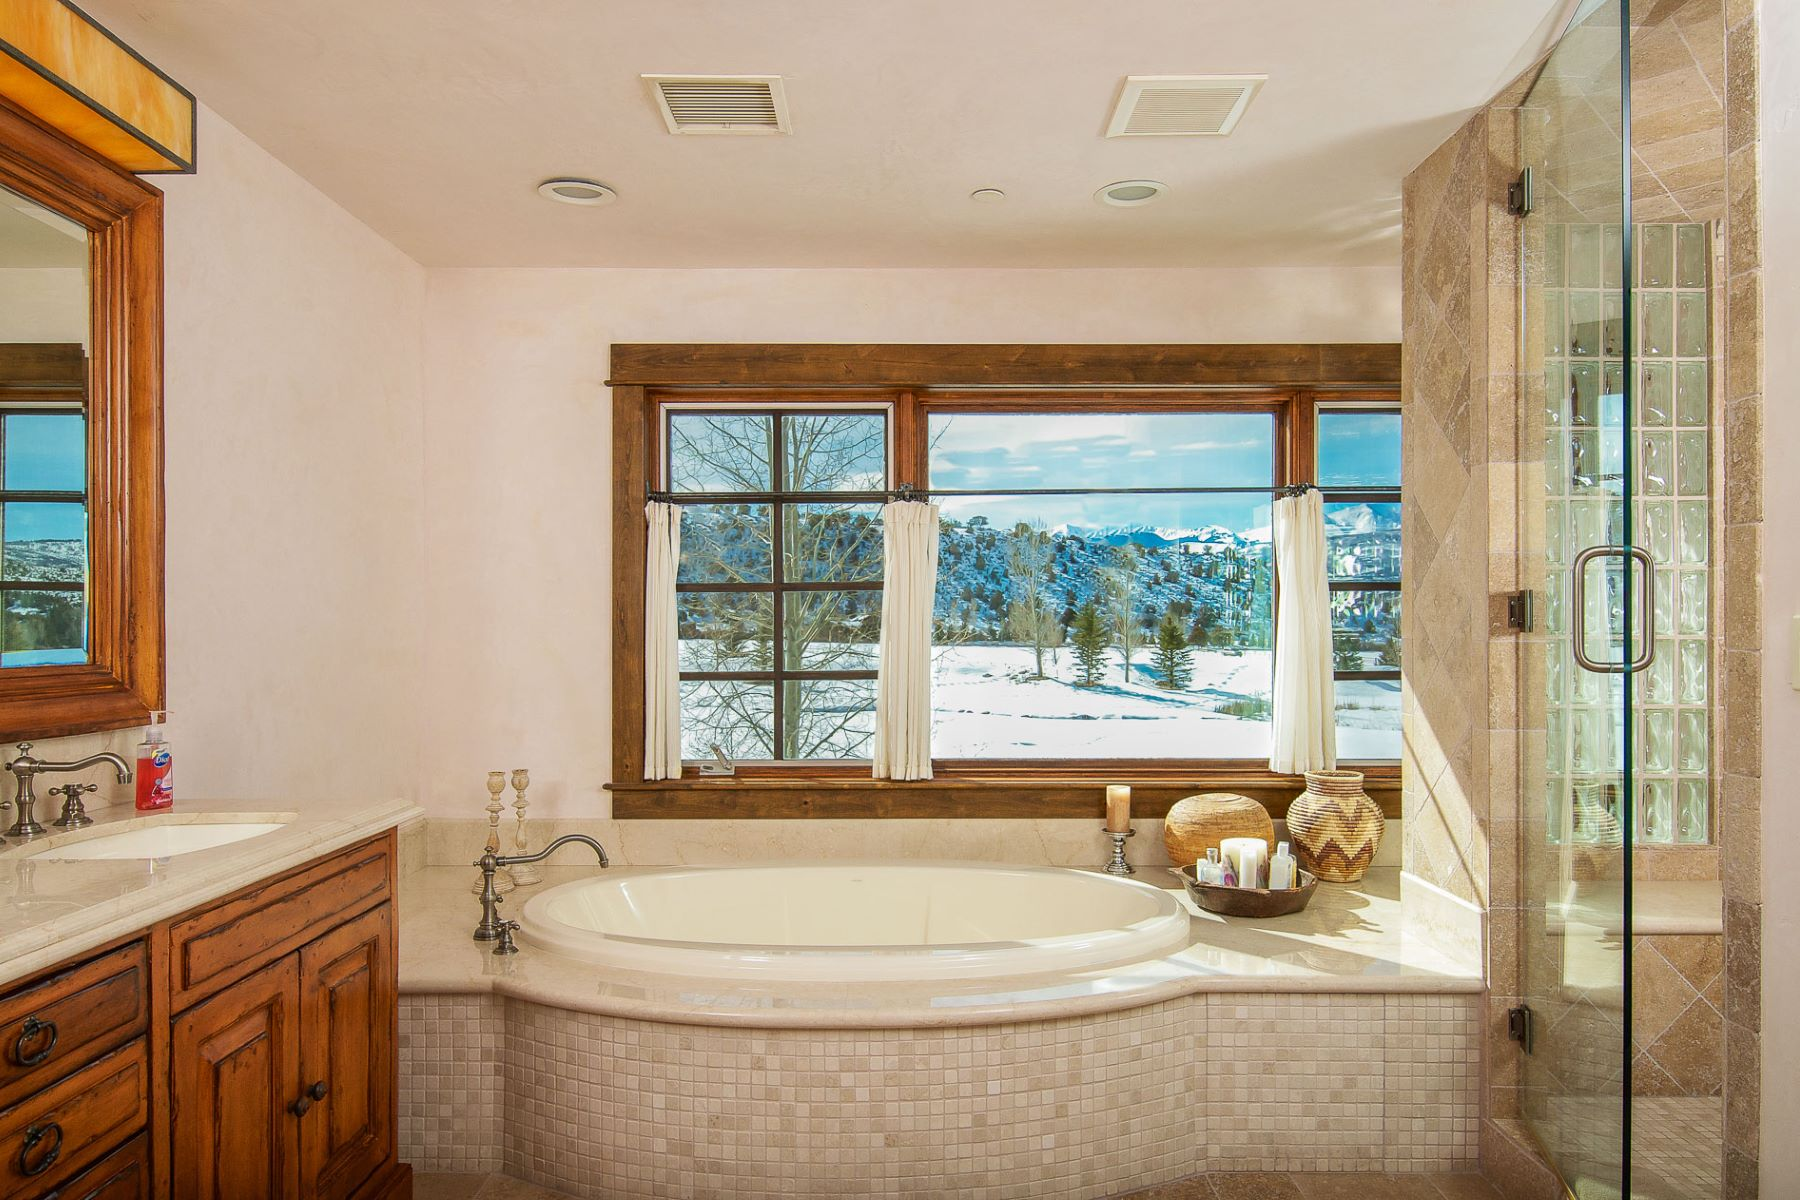 Additional photo for property listing at Spectacular Ranch on Snowmass Creek 2280/2288 Snowmass Creek Road Aspen, Colorado 81611 United States